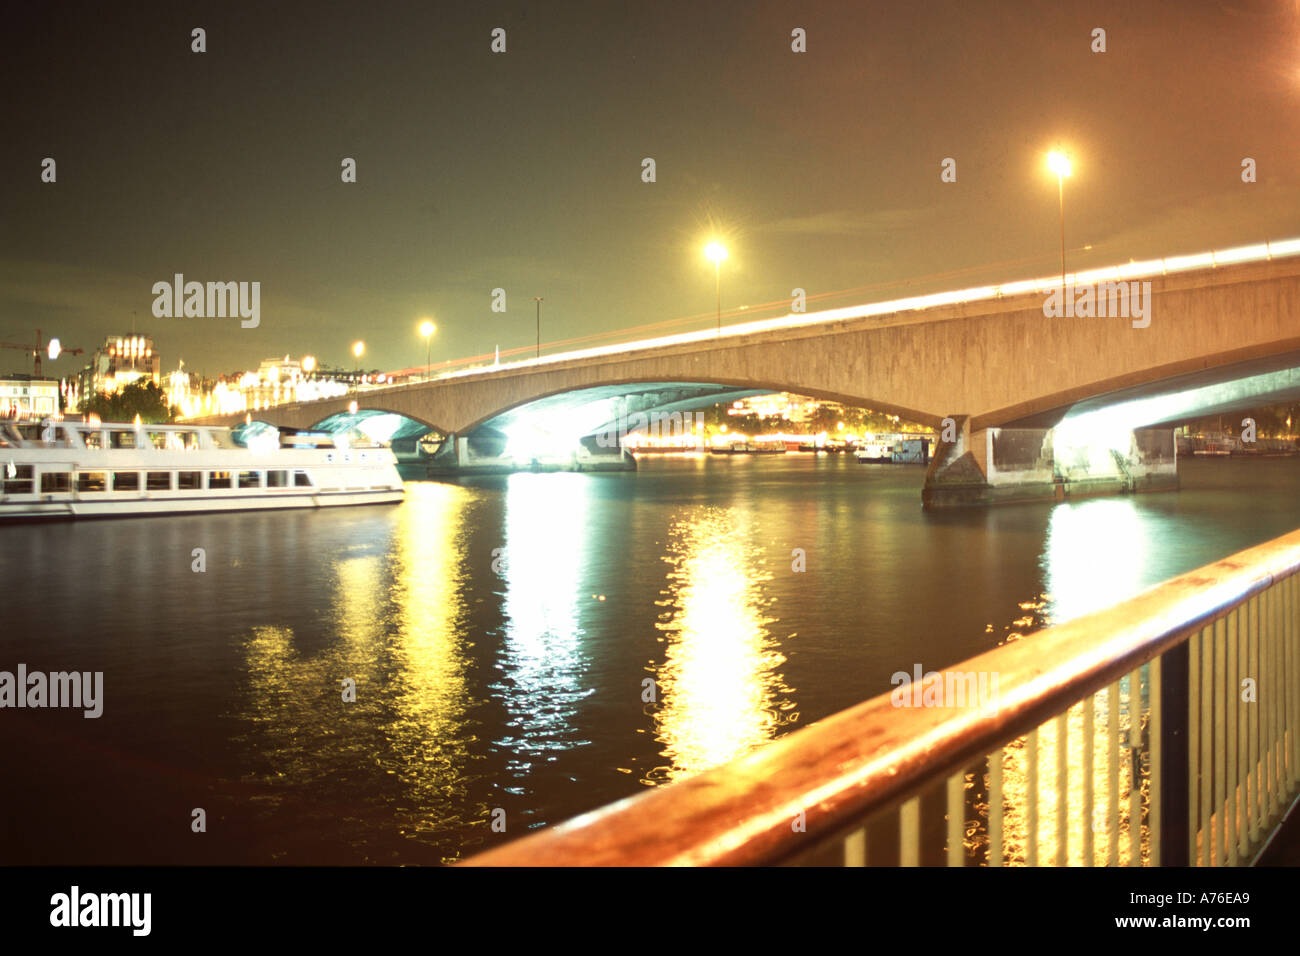 London Embankment view over River Thames with bridge with time lapse traffic - Stock Image